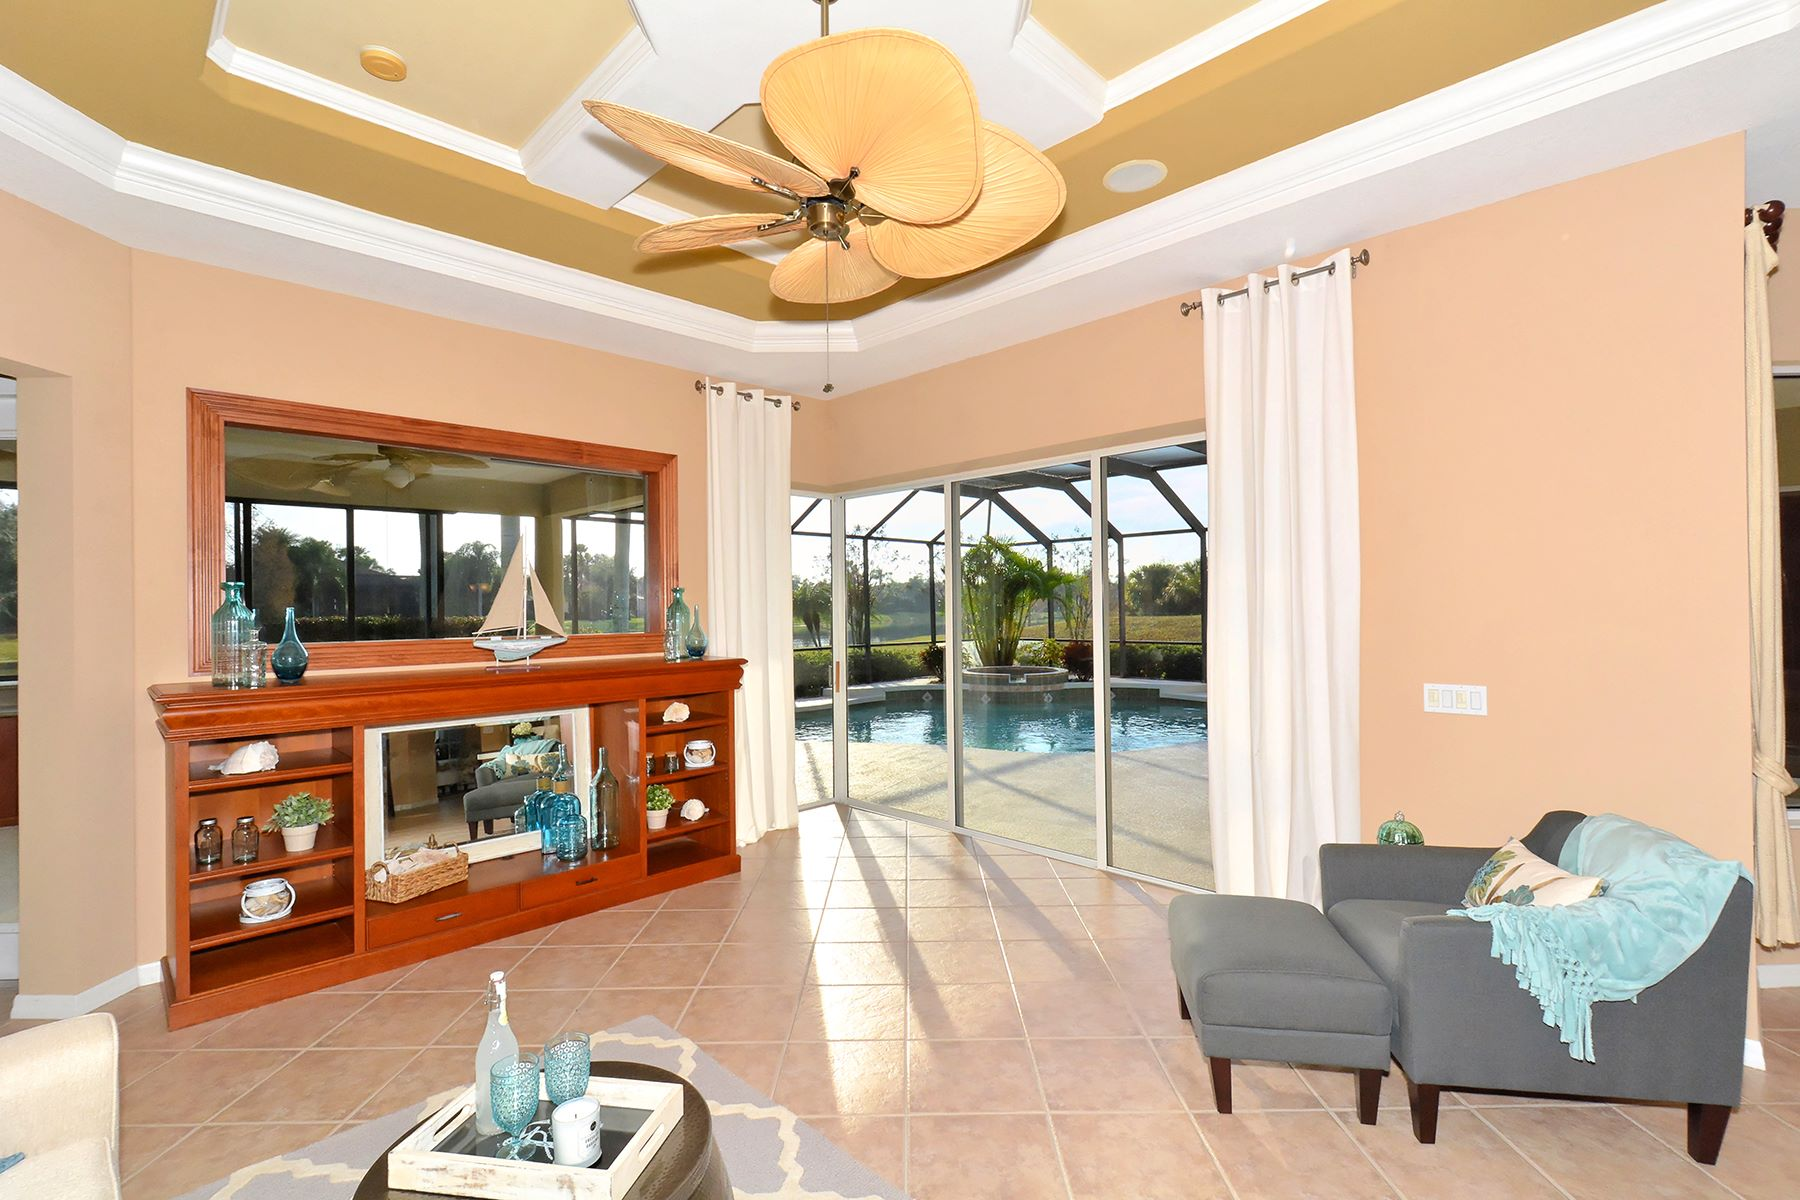 Additional photo for property listing at LAKEWOOD RANCH 13404  Blythefield Terr,  Lakewood Ranch, Florida 34202 United States